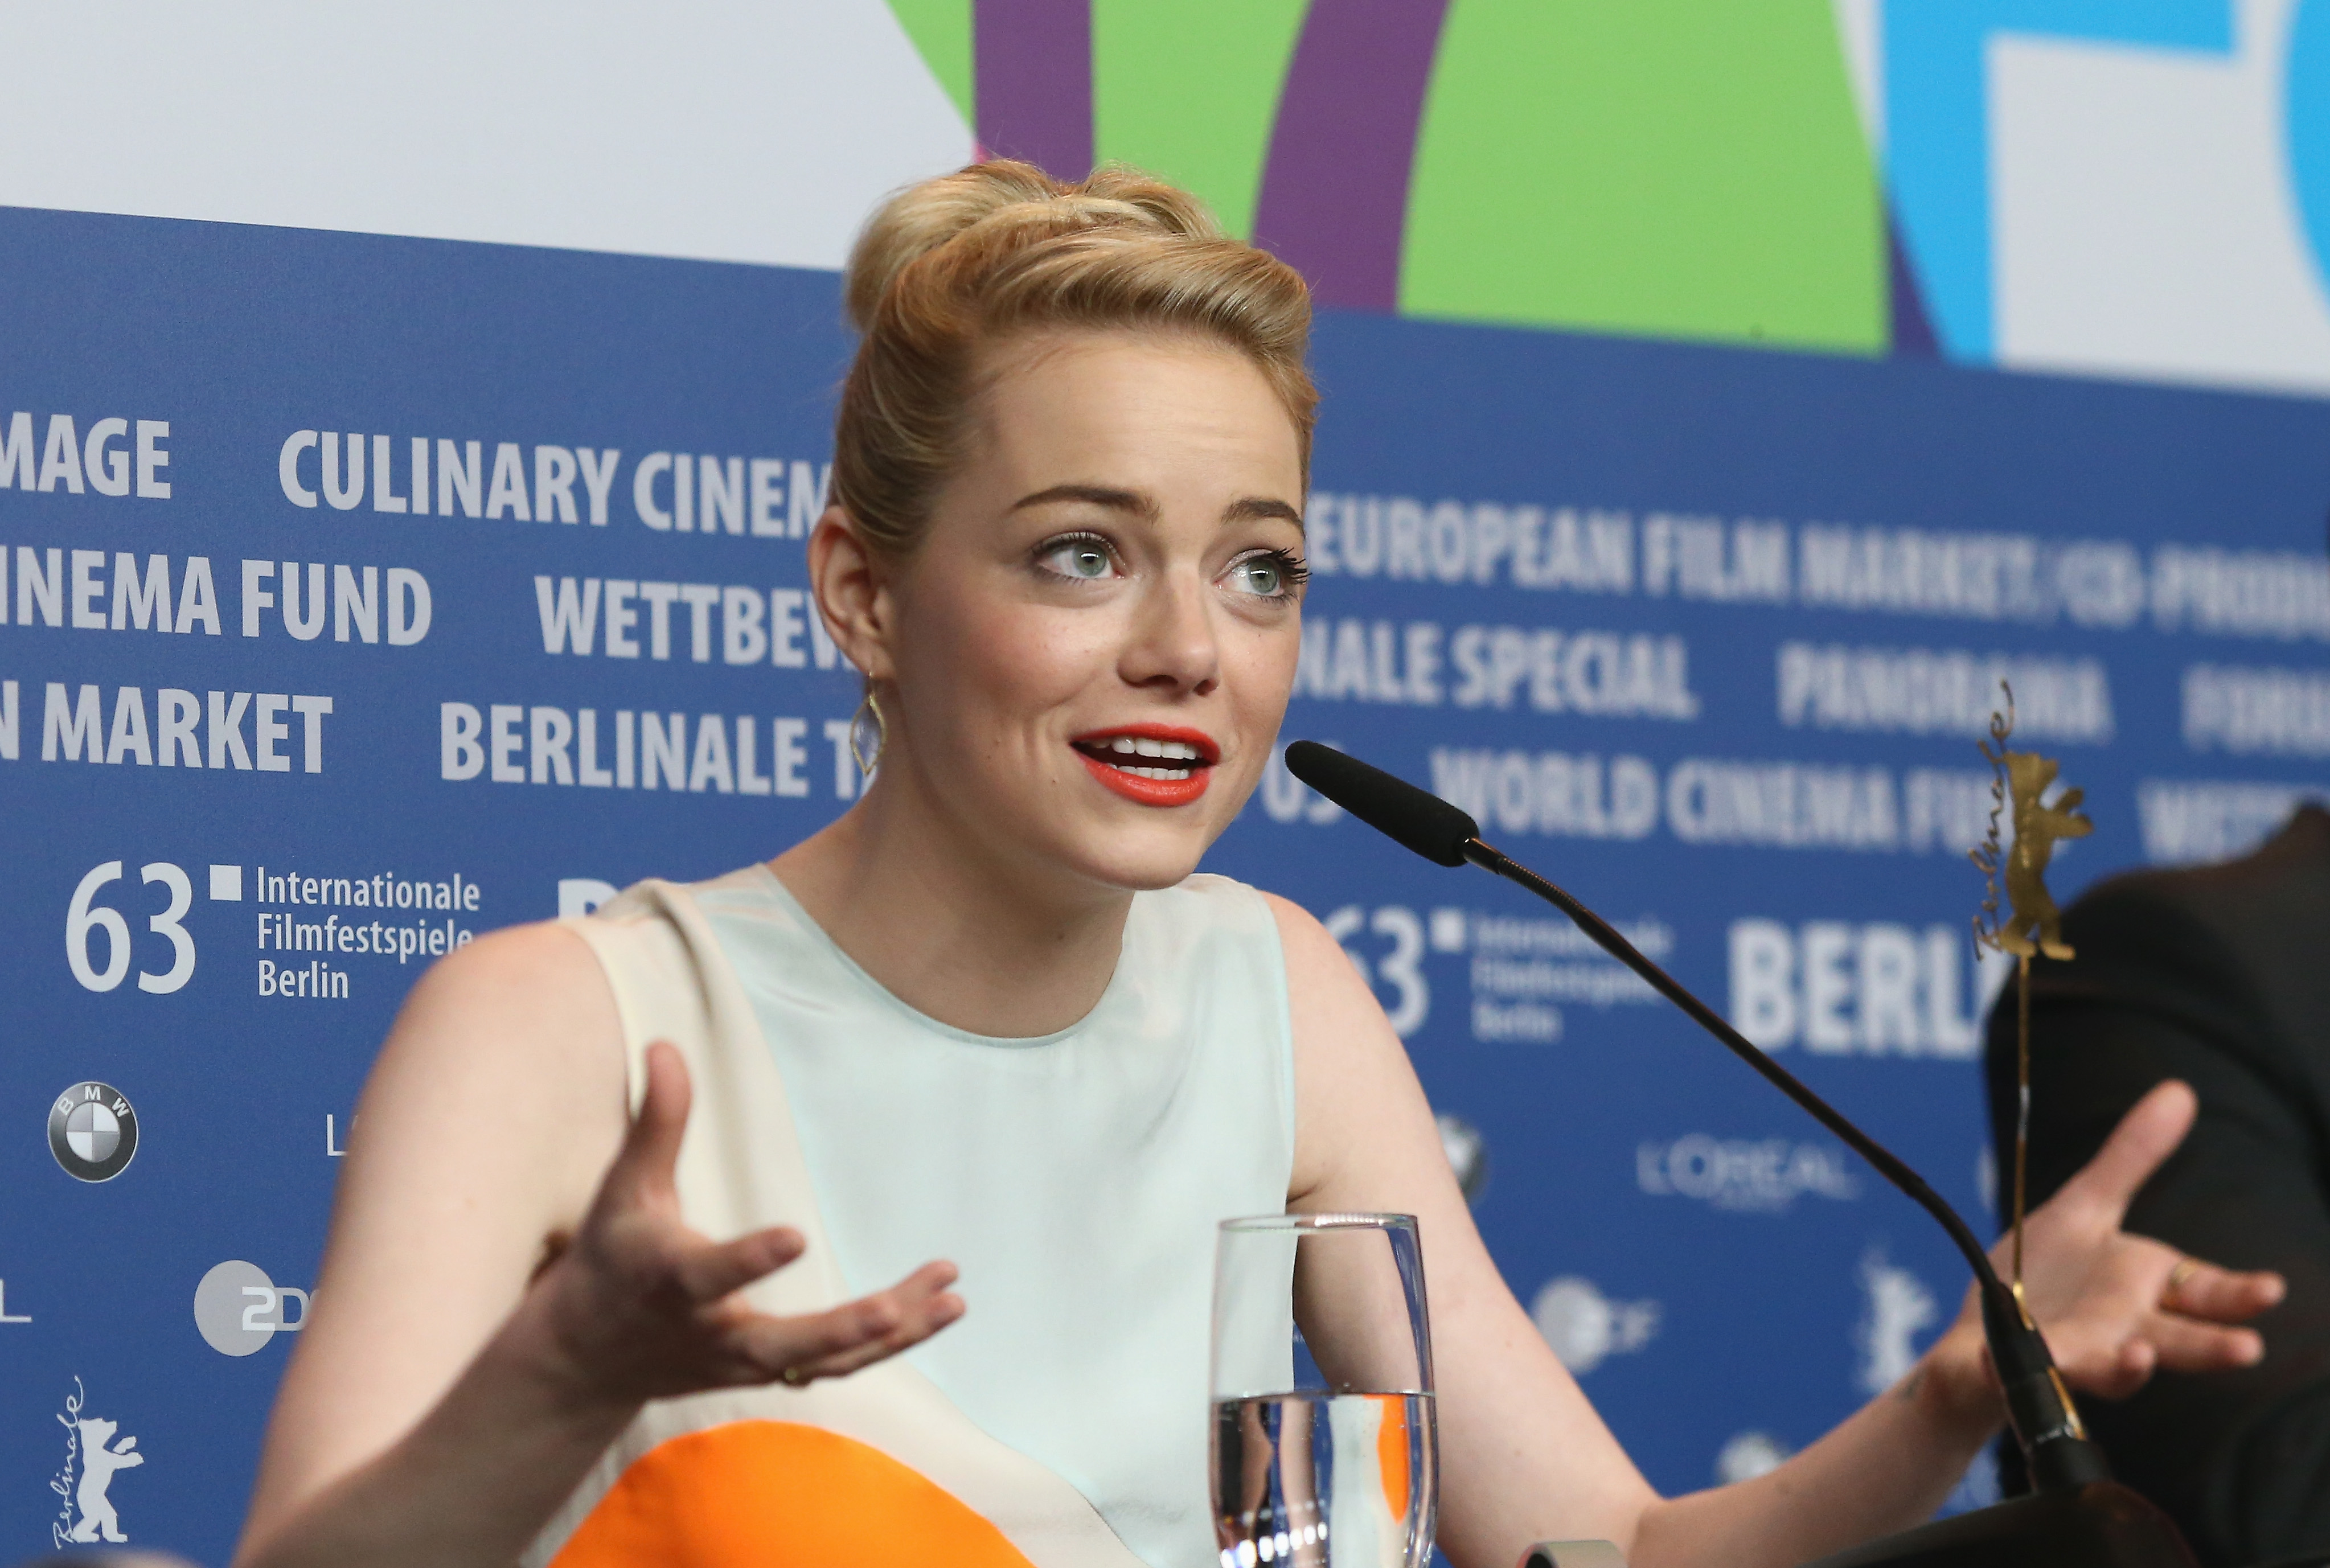 Emma Stone spoke with the press while promoting The Croods at its photocall in Berlin.